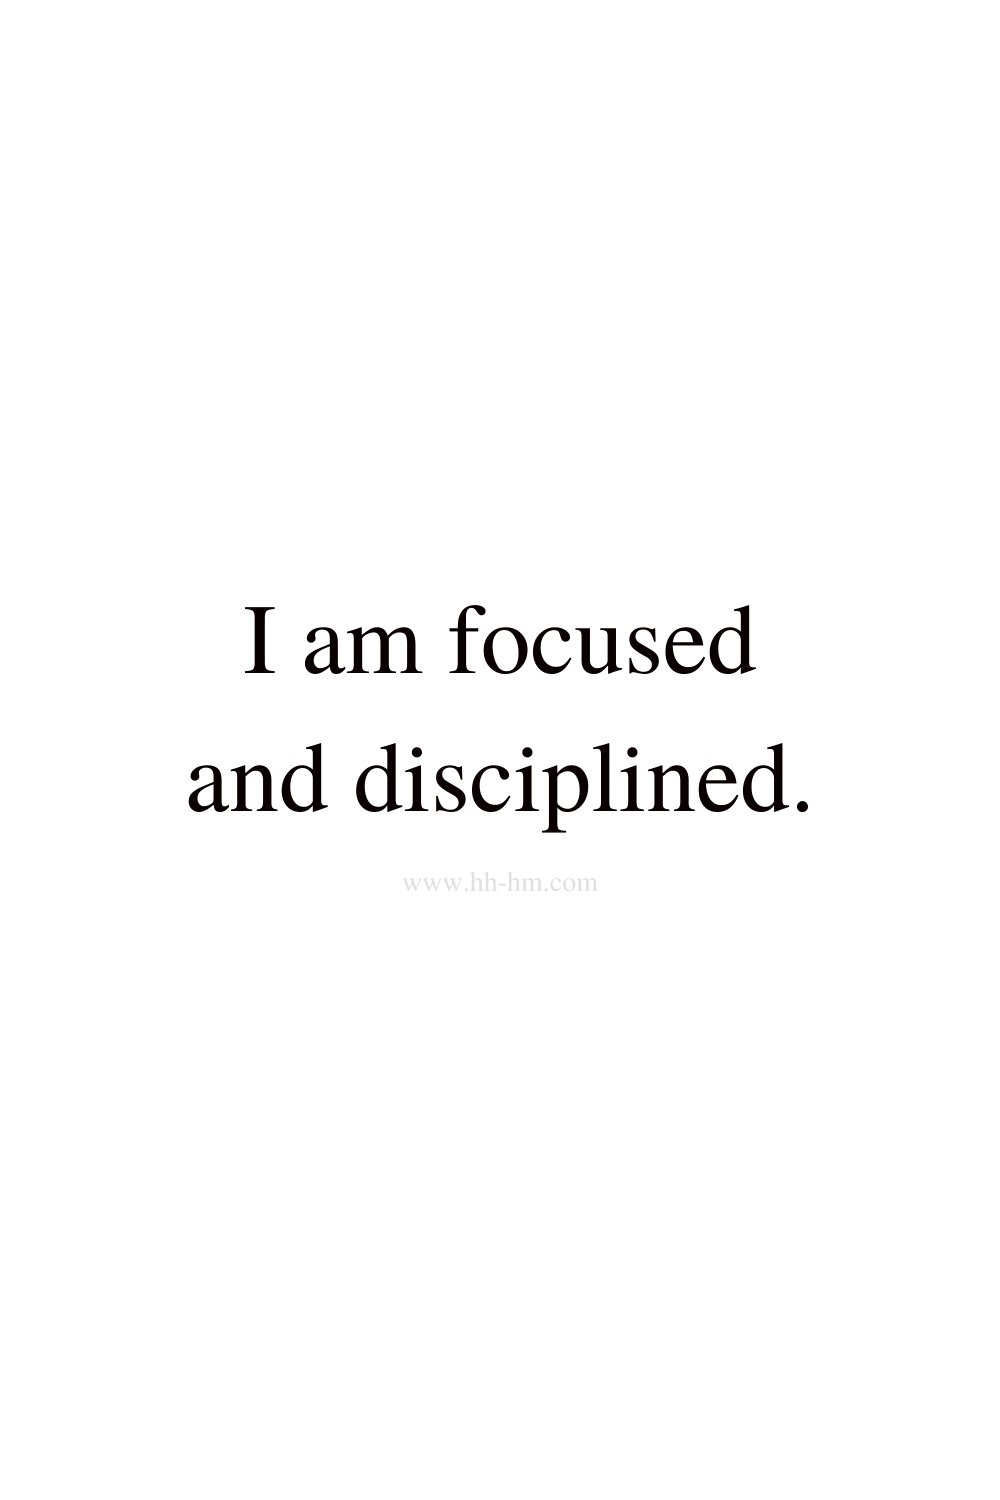 I am focused and disciplined - self love and self confidence morning affirmations